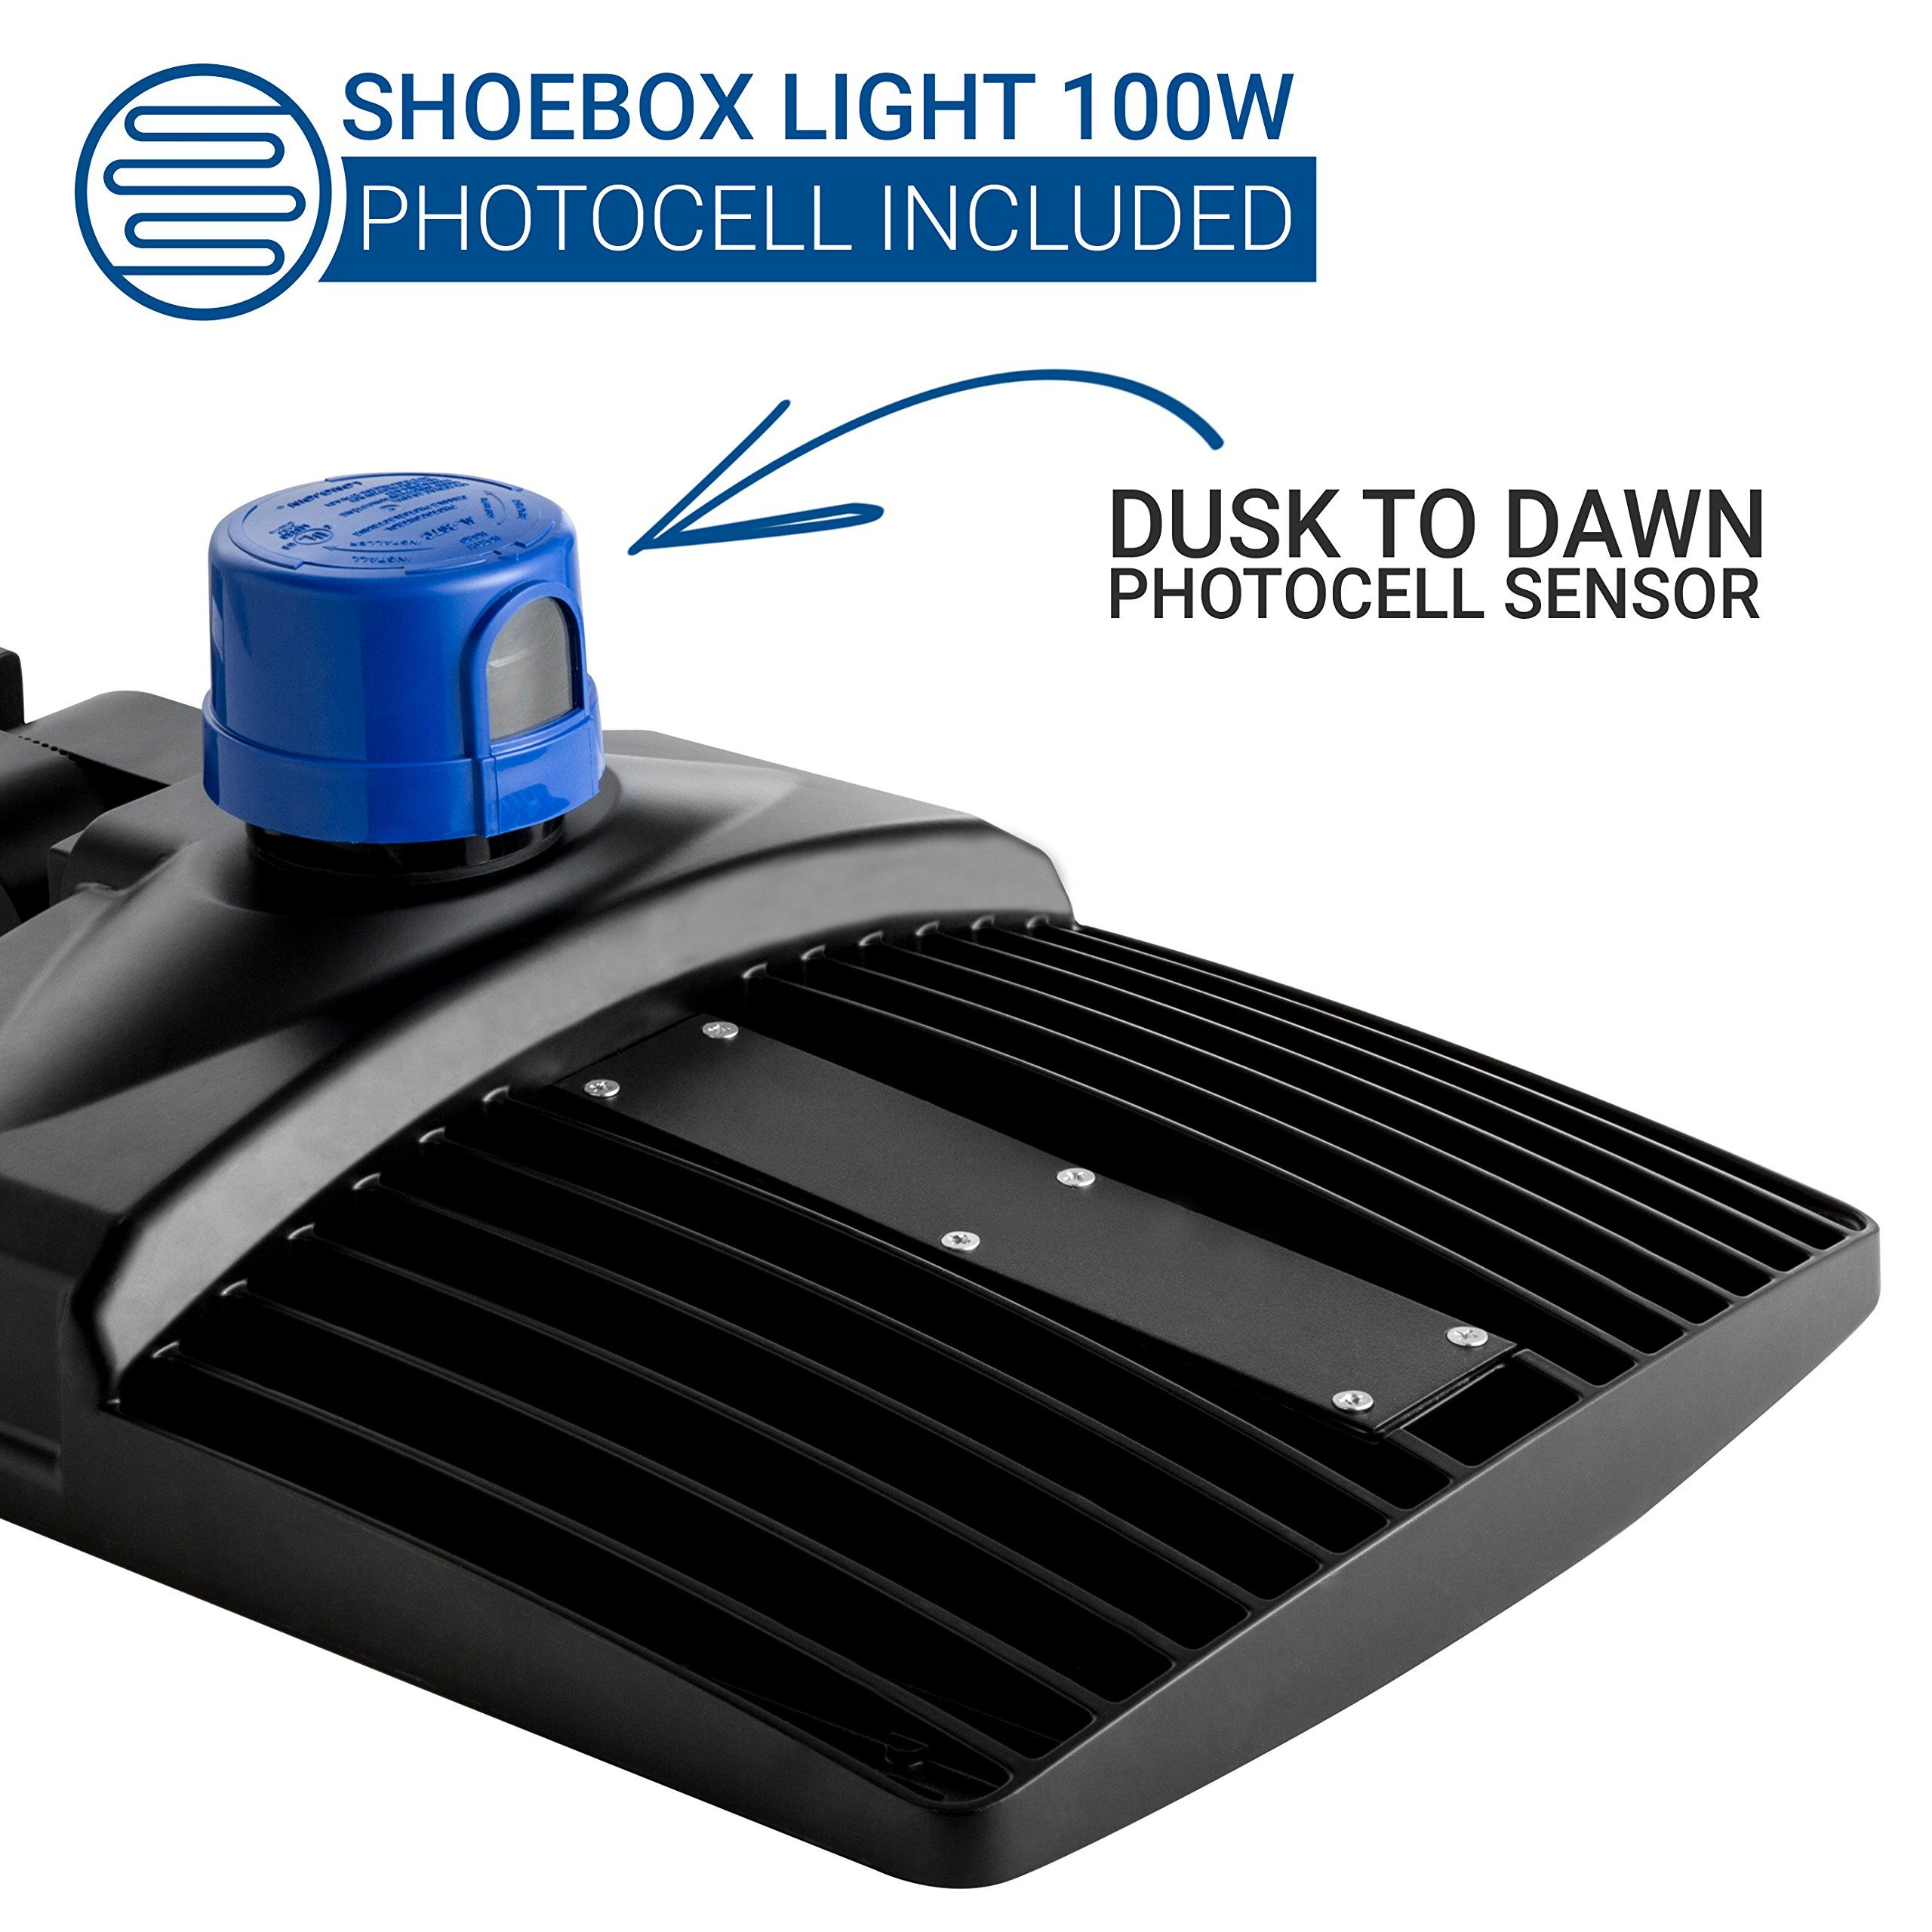 medium resolution of hyperikon led shoebox pole light 100w 300w hid hps replacement 5700k 11100 lumen direct wiring